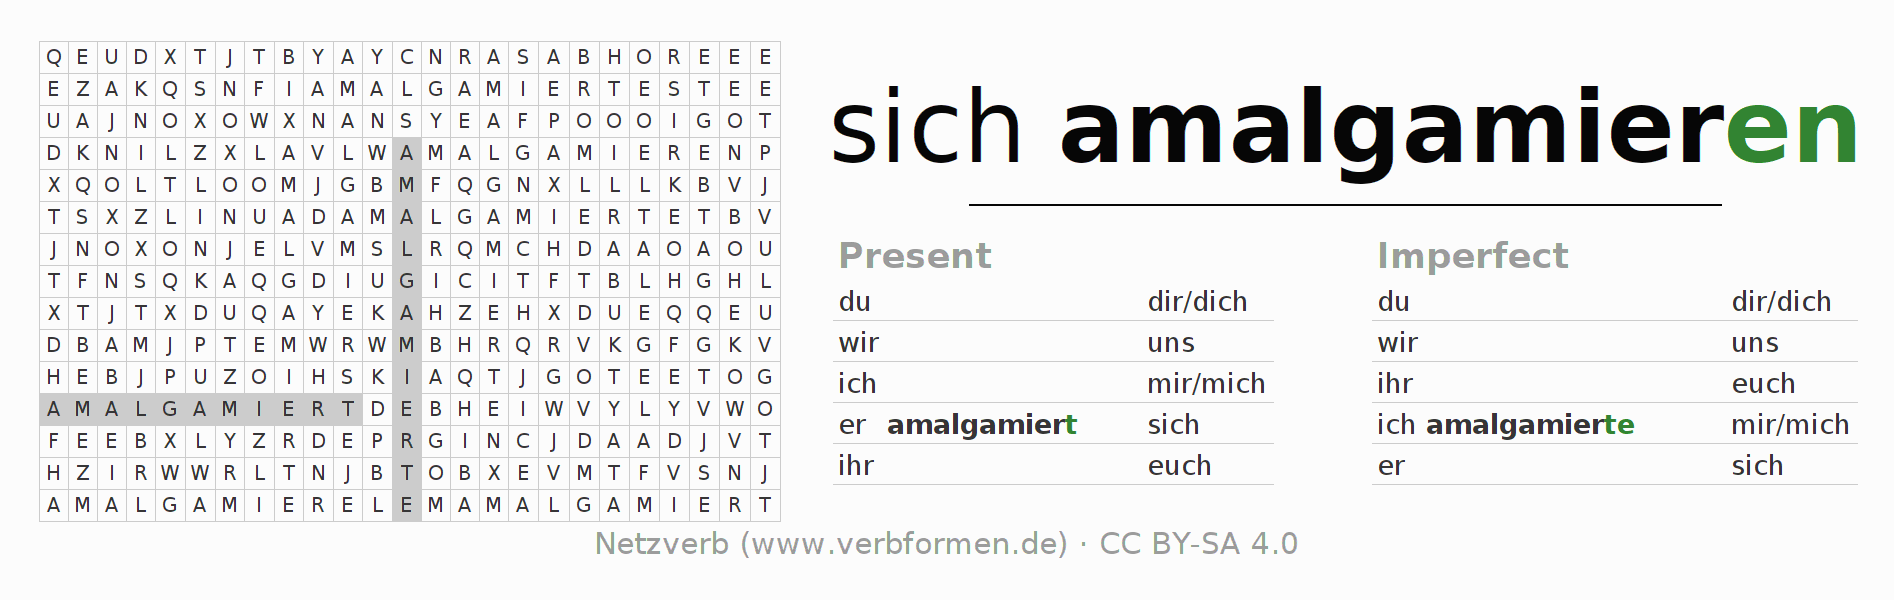 Word search puzzle for the conjugation of the verb sich amalgamieren